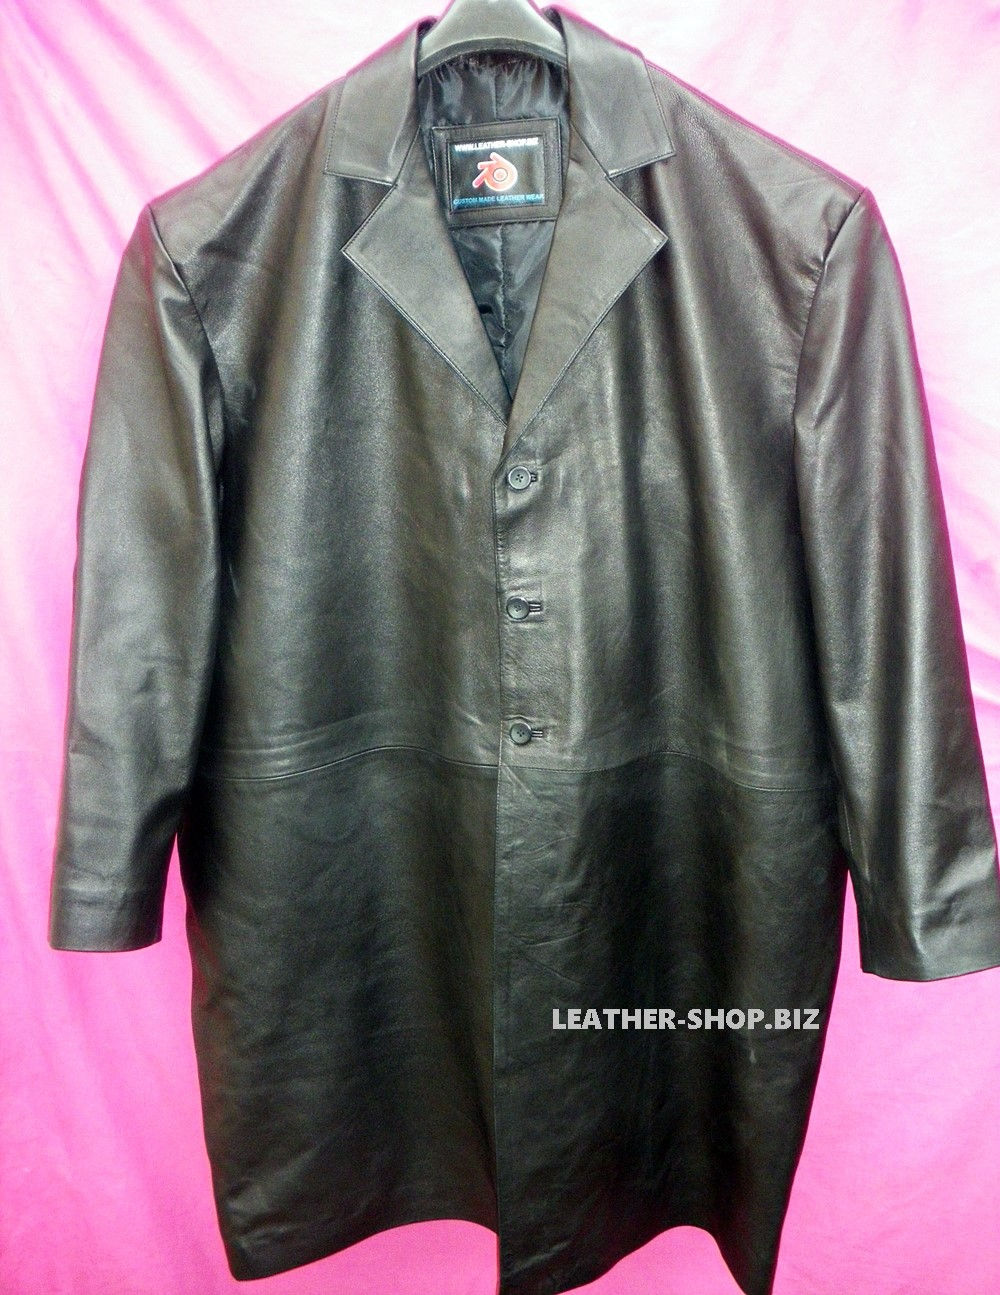 leather-long-coat-custom-made-style-mlc542-www.leather-shop.biz-front-of-coat-pic.jpg